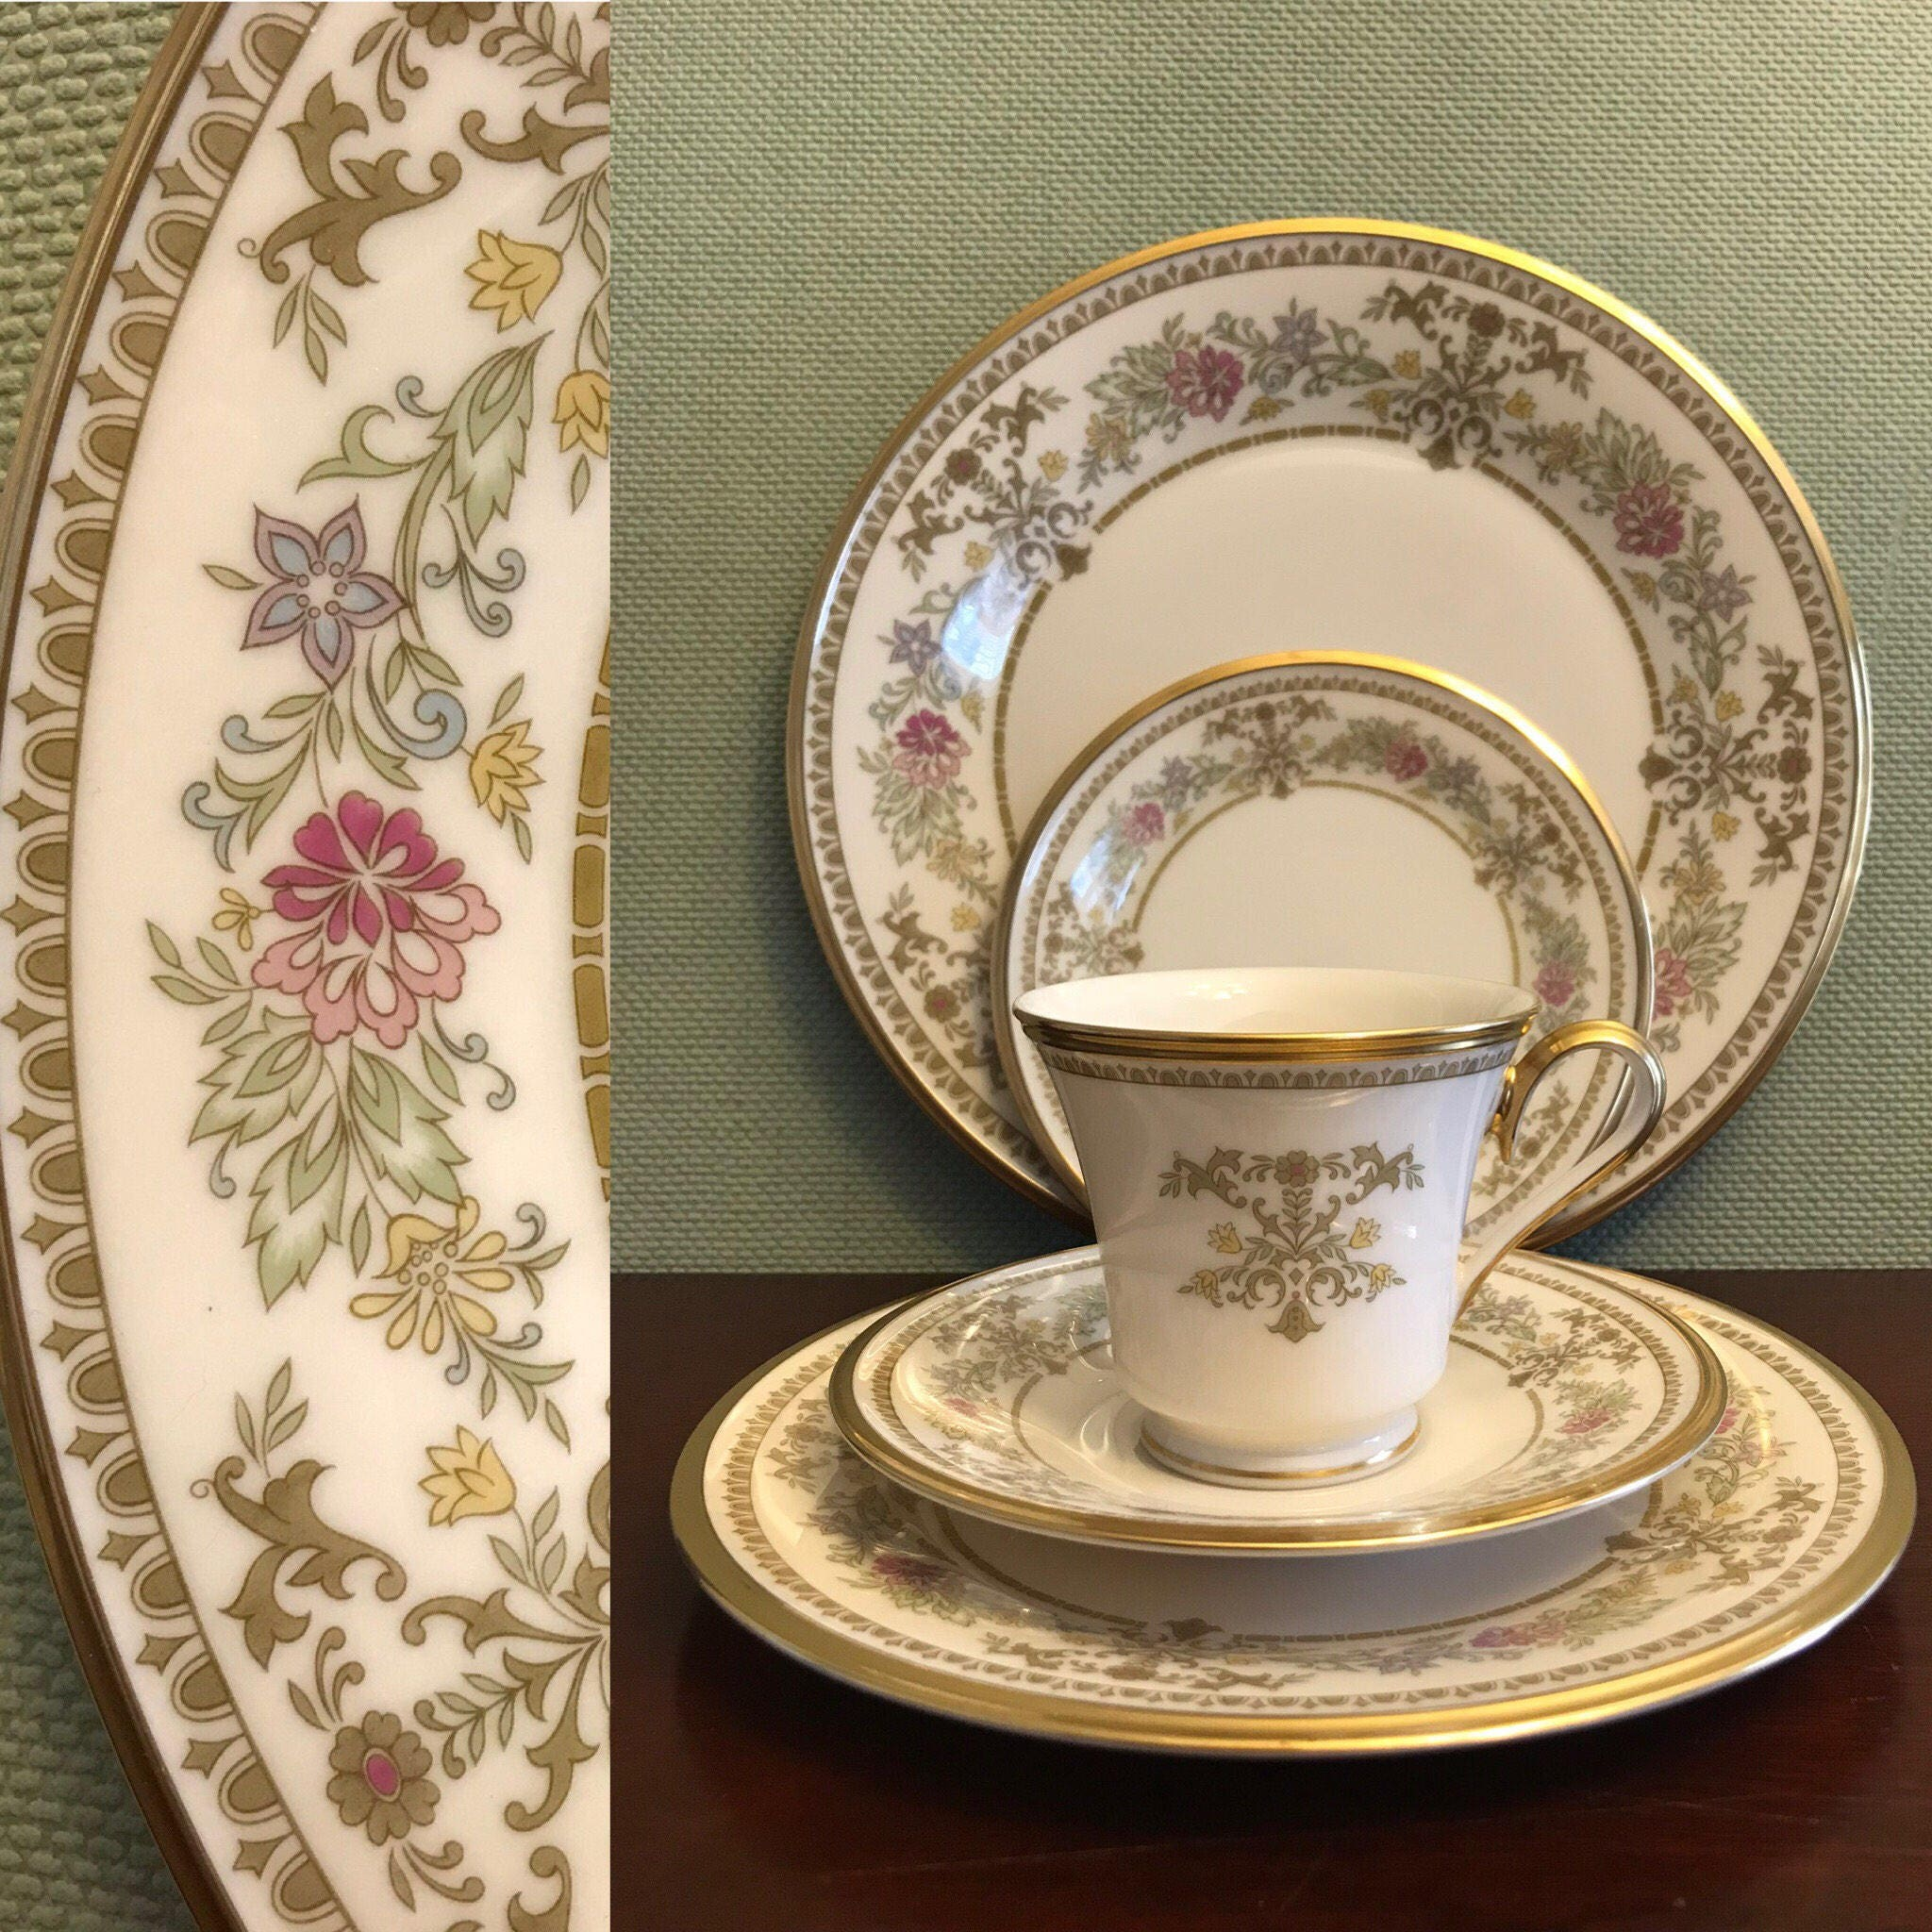 Lenox Castle Garden China 5 pc Place setting Luxury Dinnerware Very Good Condition Wedding Gift Replacement Lenox Holiday Dinnerware & Lenox Castle Garden China 5 pc Place setting Luxury Dinnerware ...